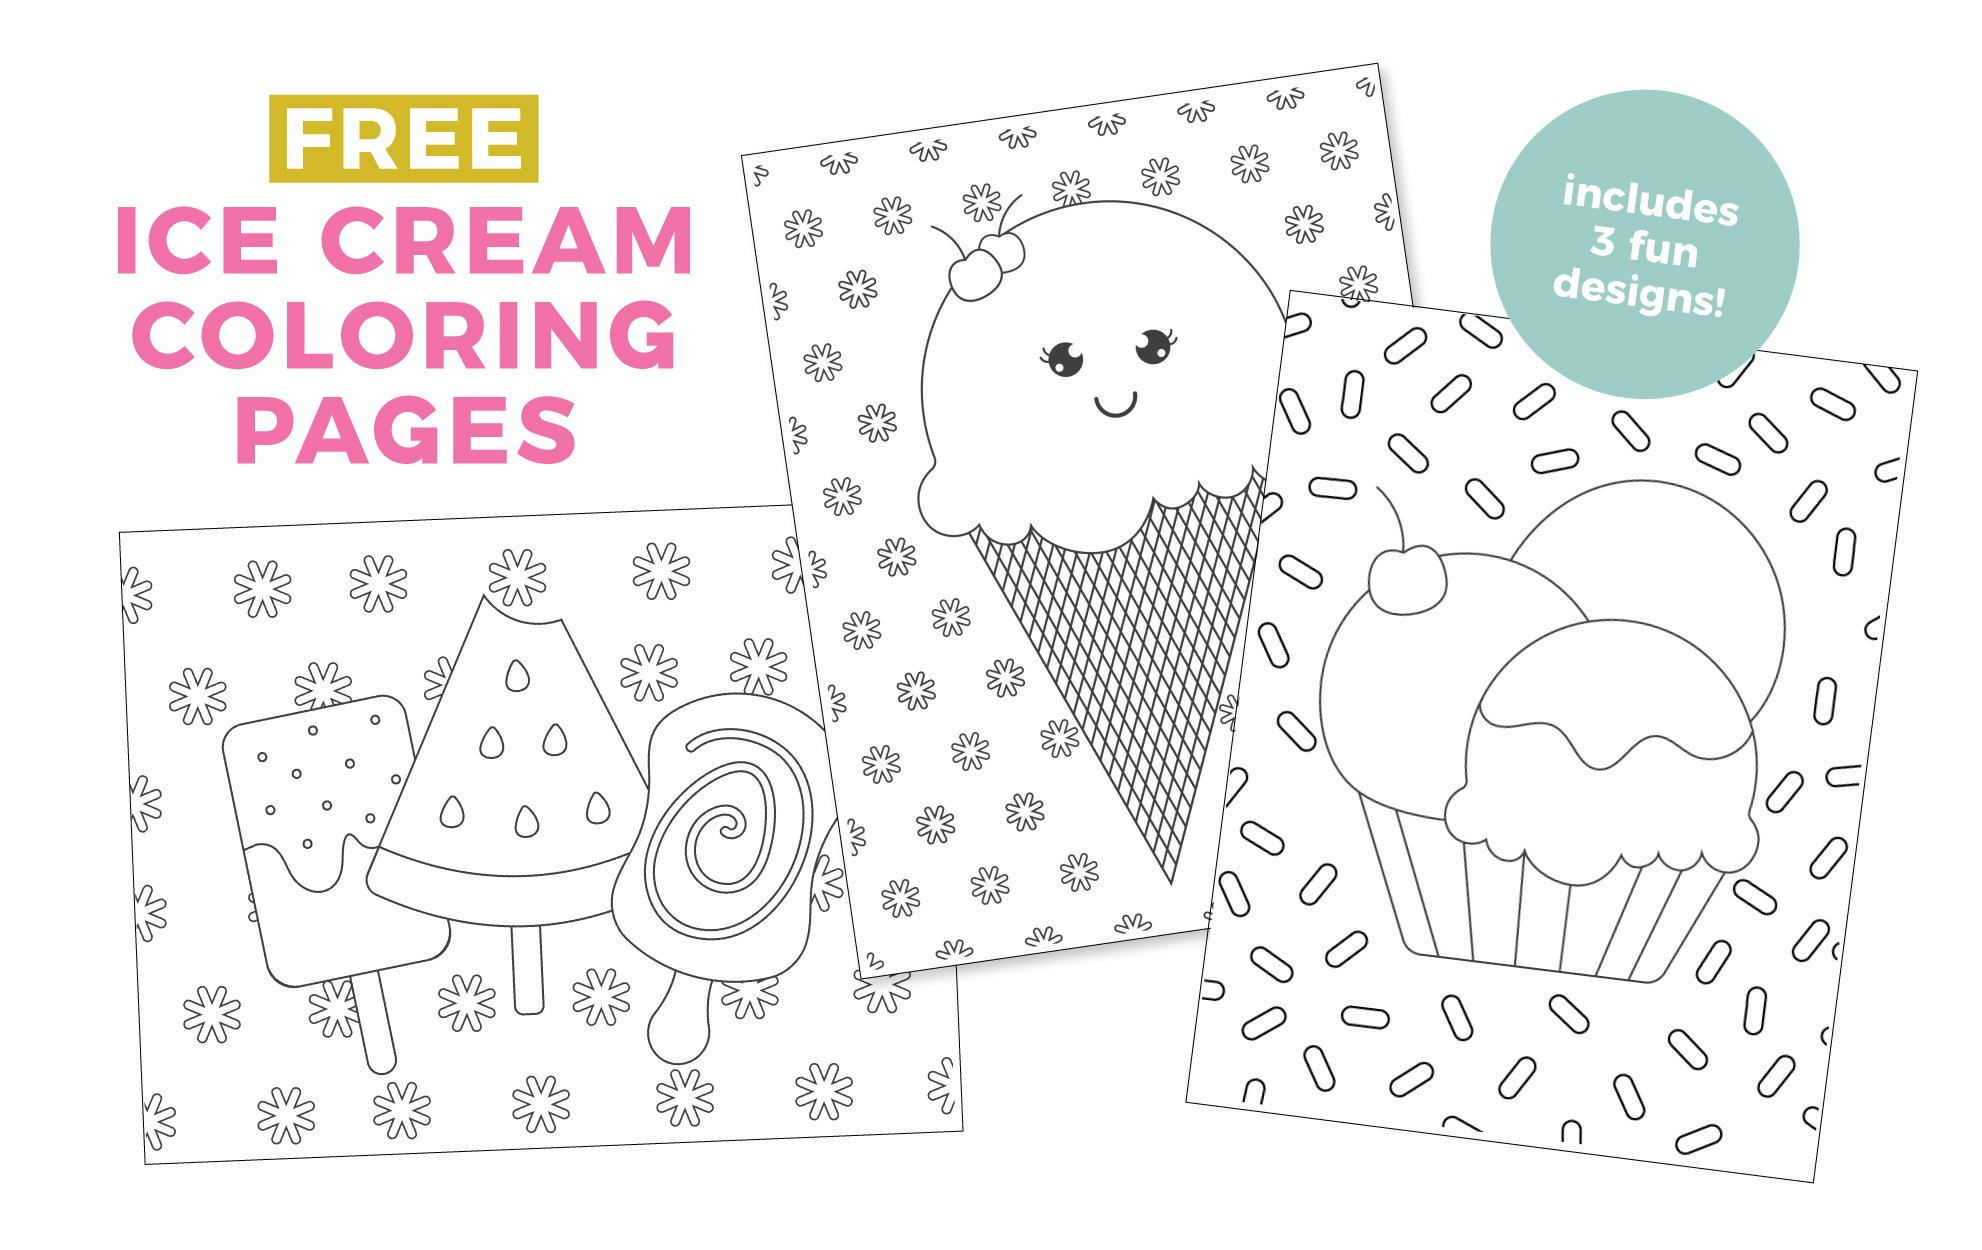 3 Ice Cream Coloring Pages - Popsicles, Ice Cream Cone, Sundae